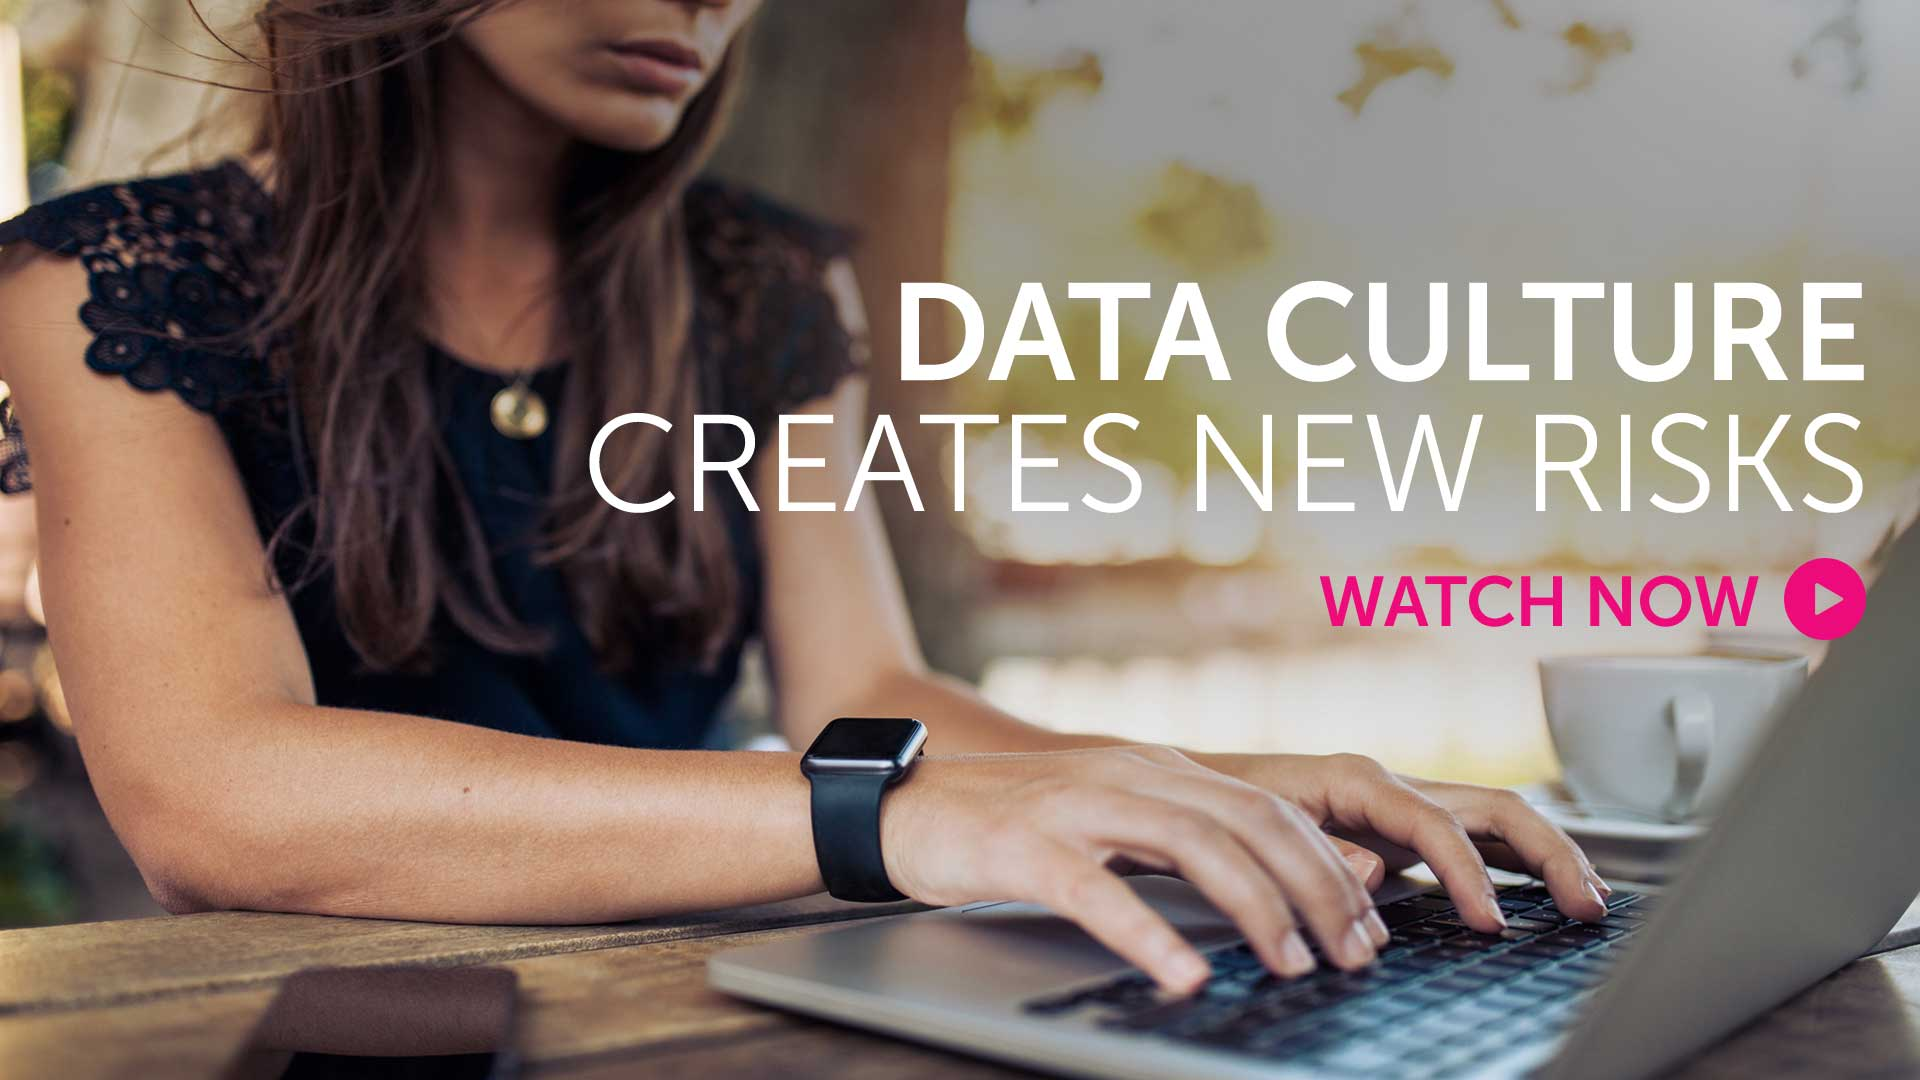 Briefing: Data culture creates new risks